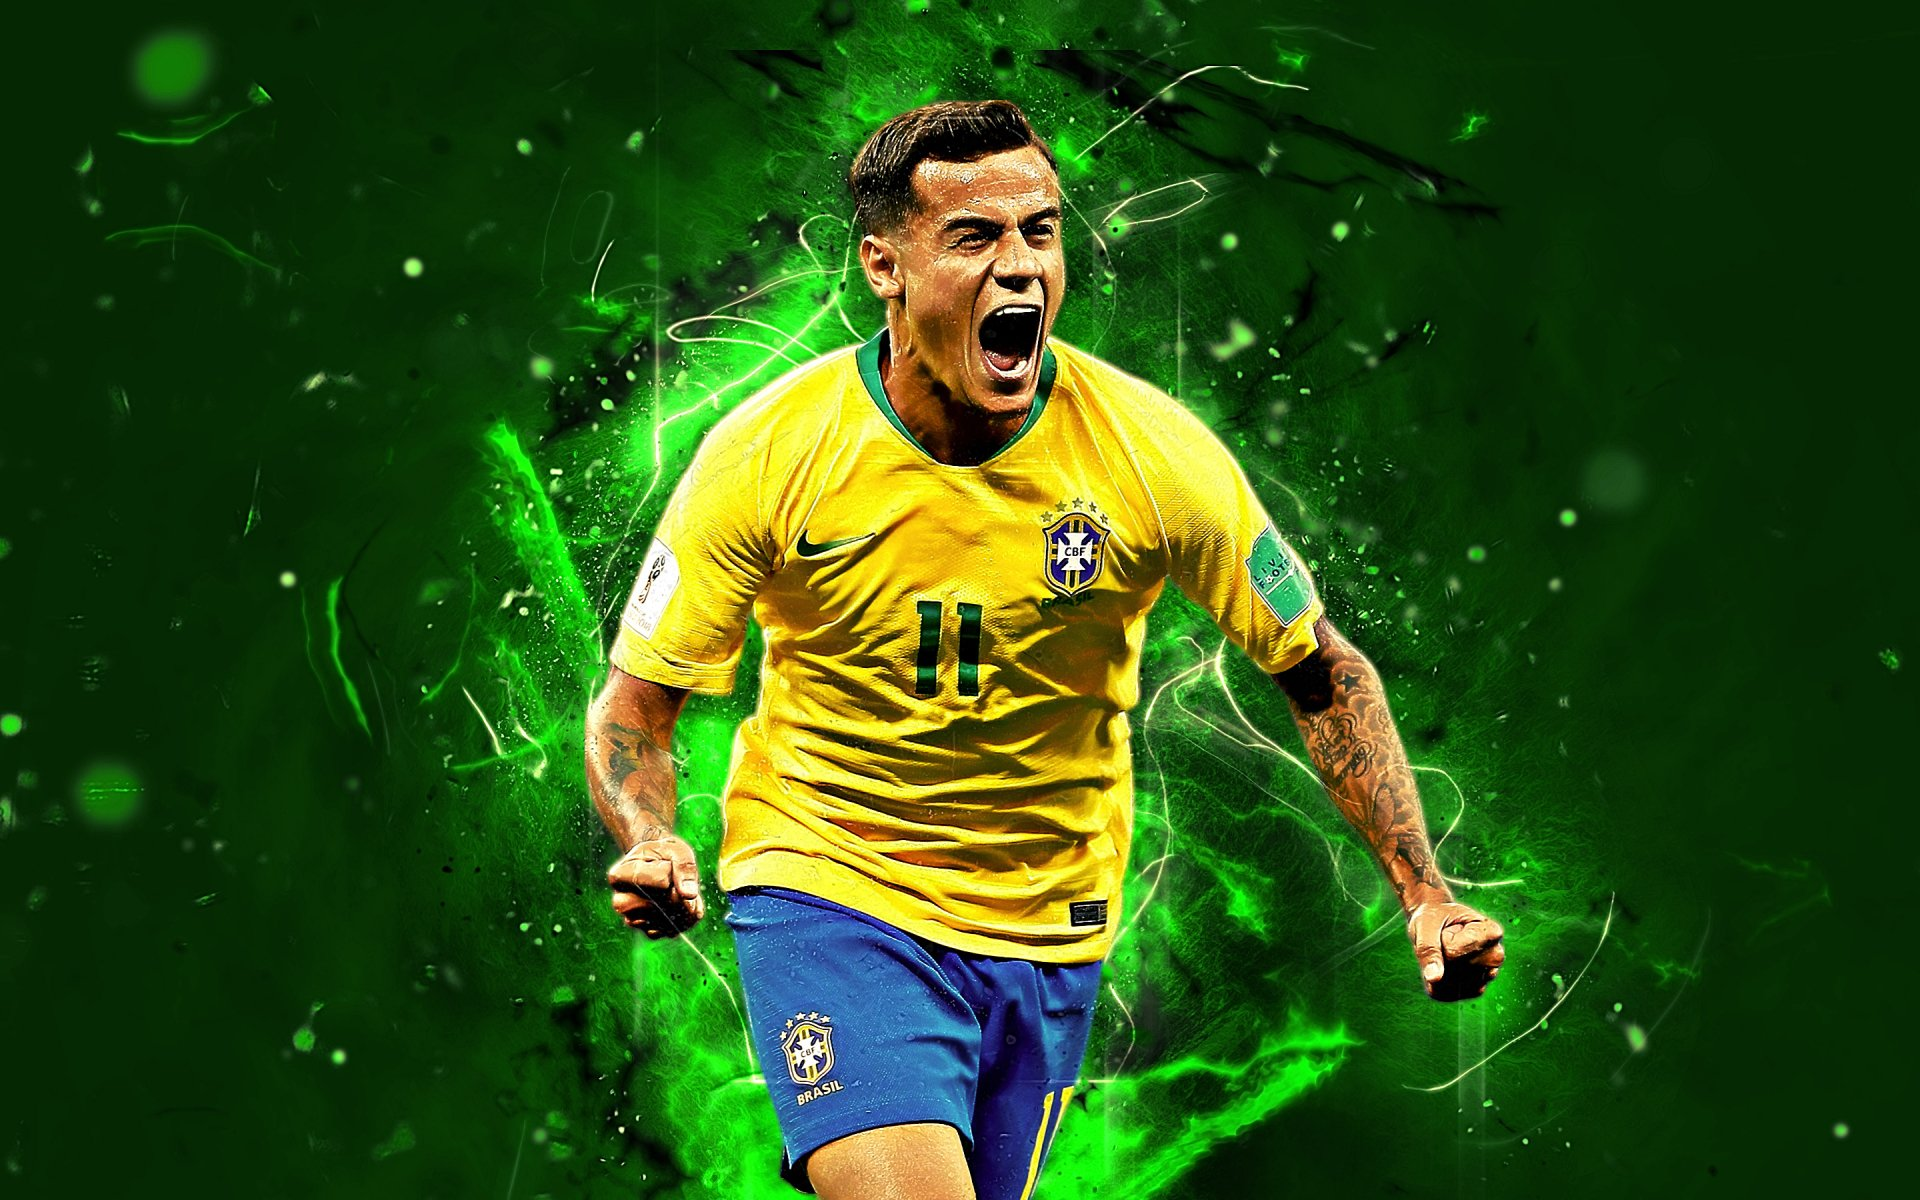 Philippe coutinho brasil hd wallpaper background image - Coutinho wallpaper hd ...